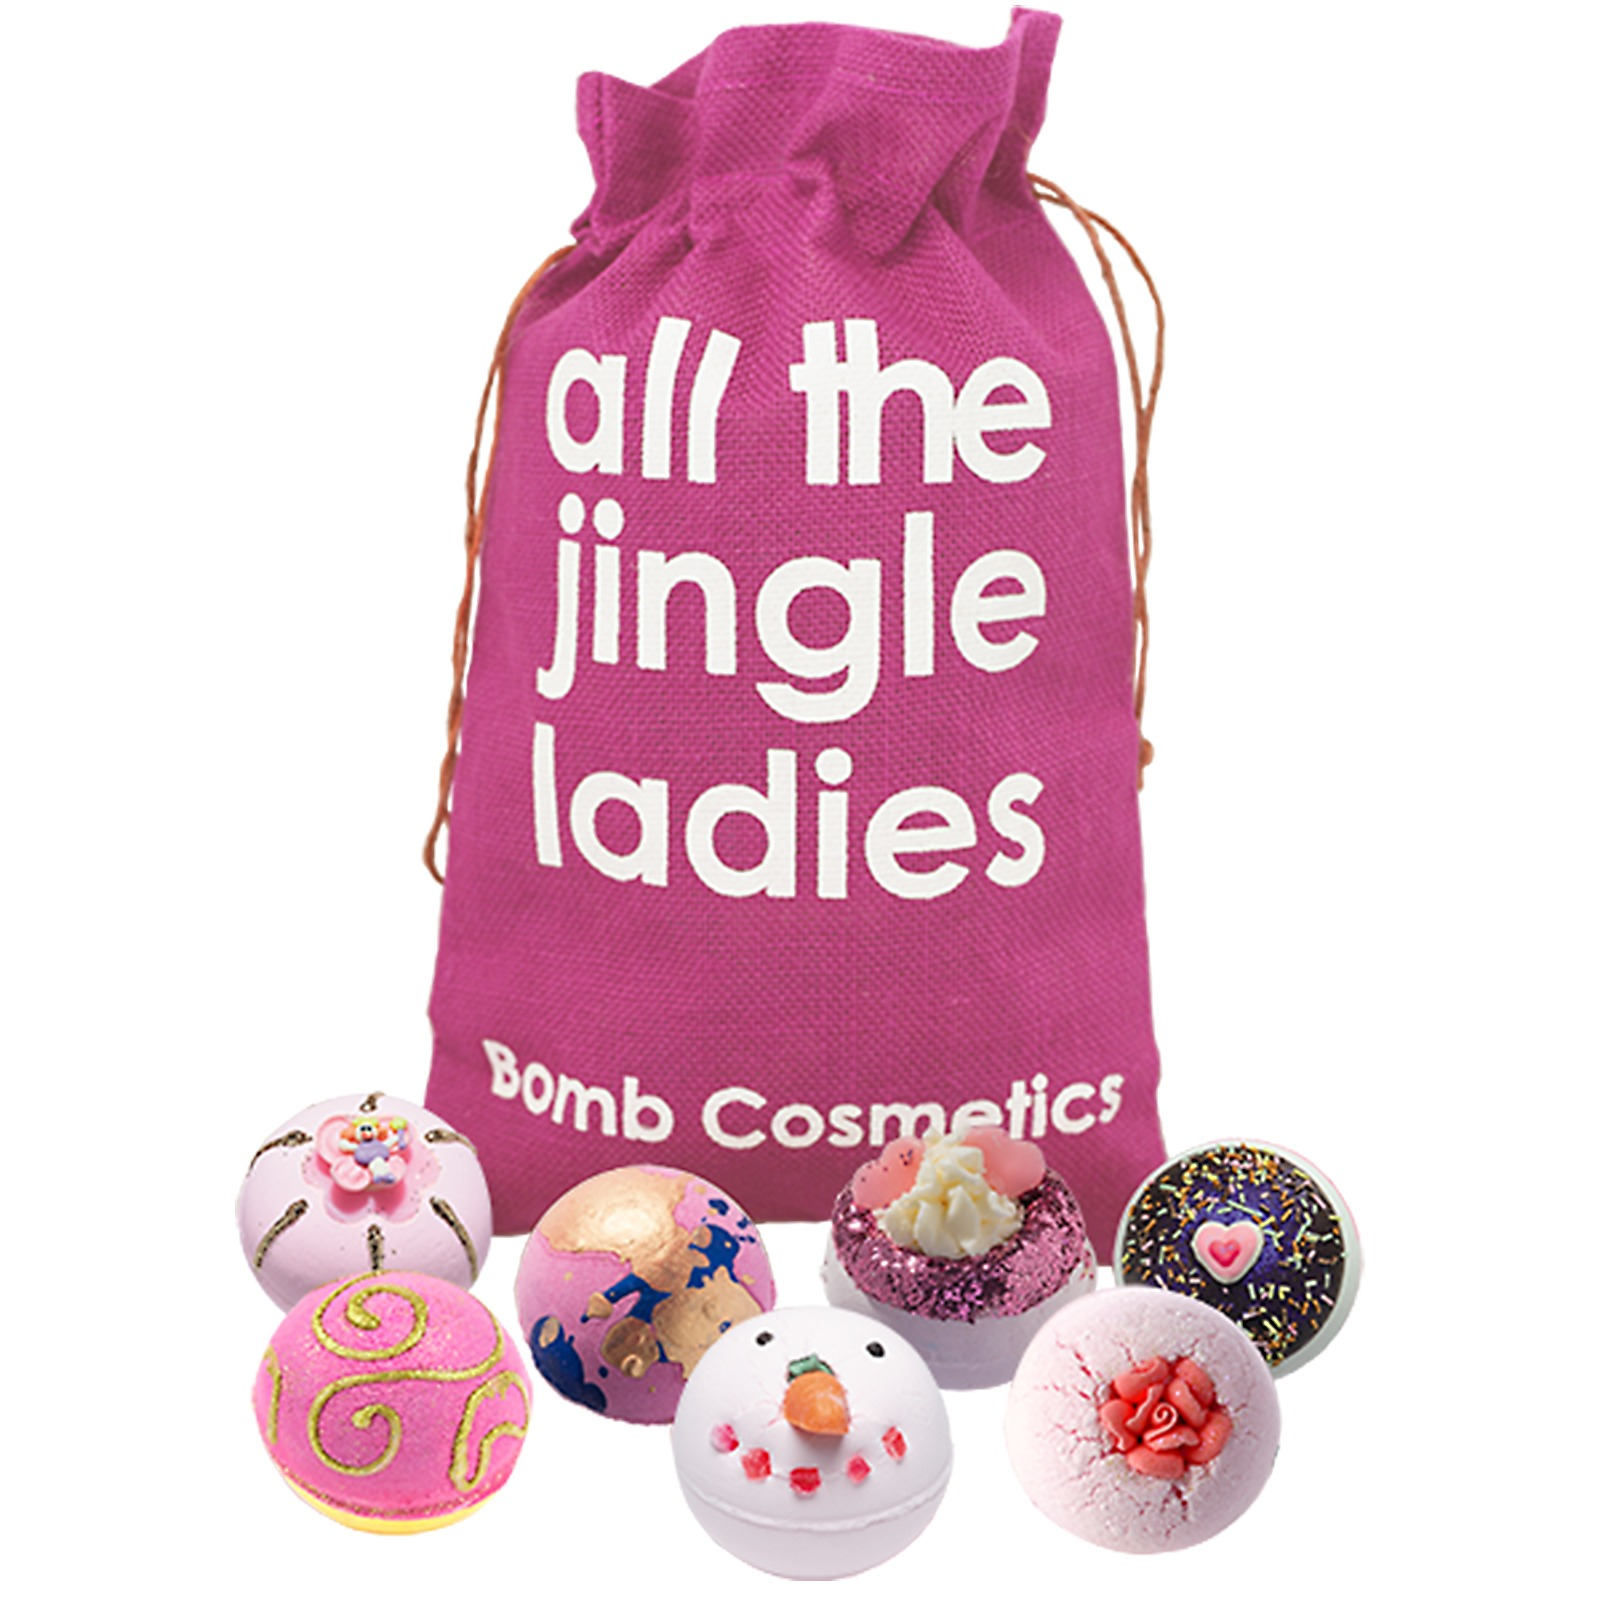 Bomb Cosmetics Christmas 2019 All the Jingle Ladies